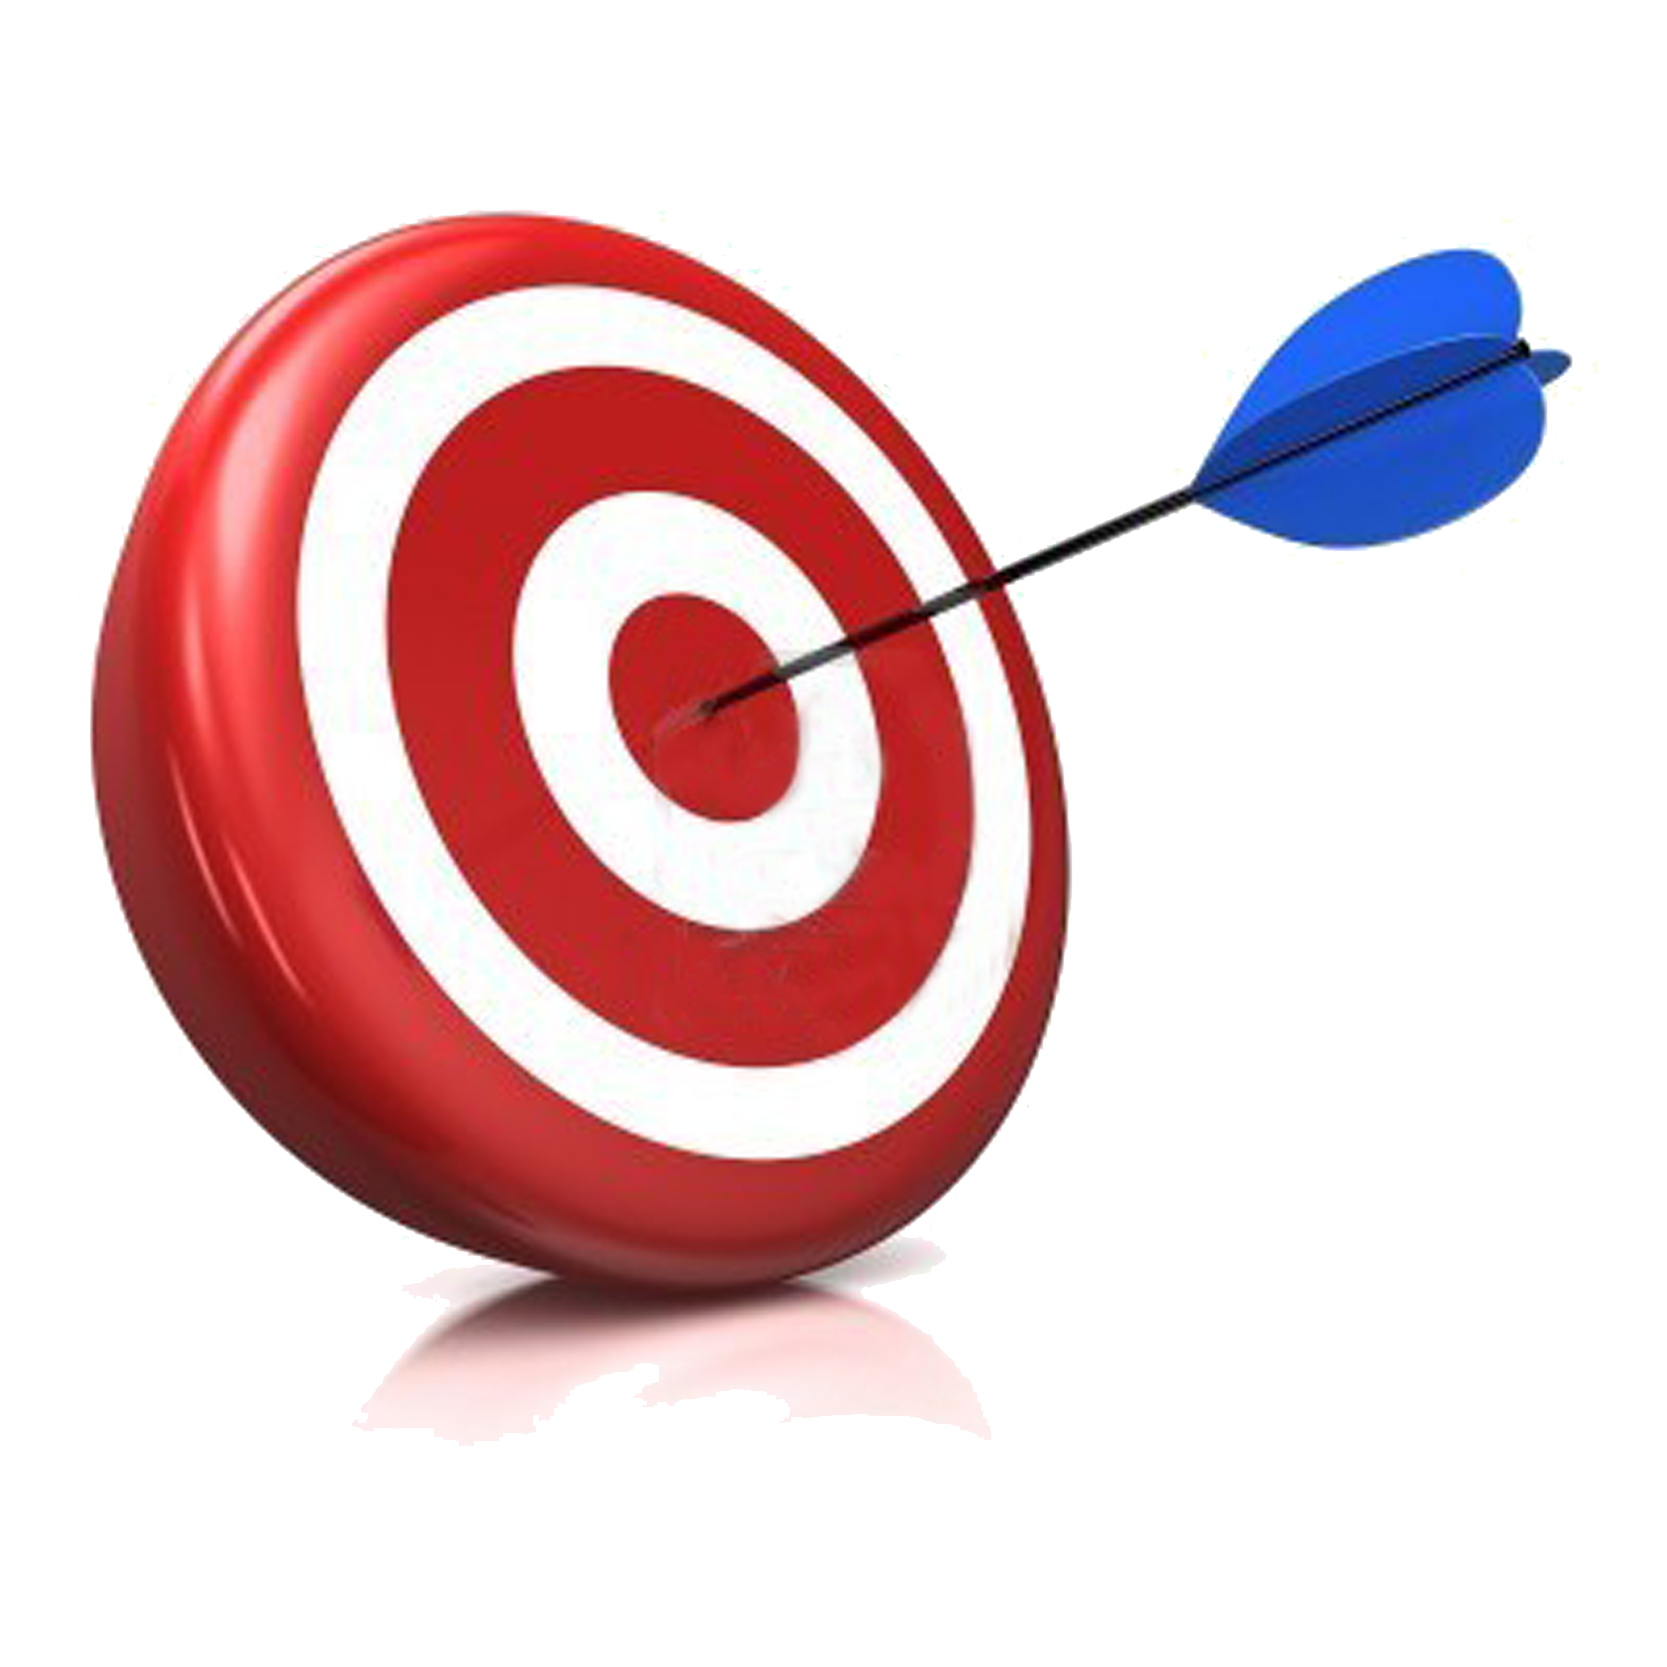 Target clipart learning #10